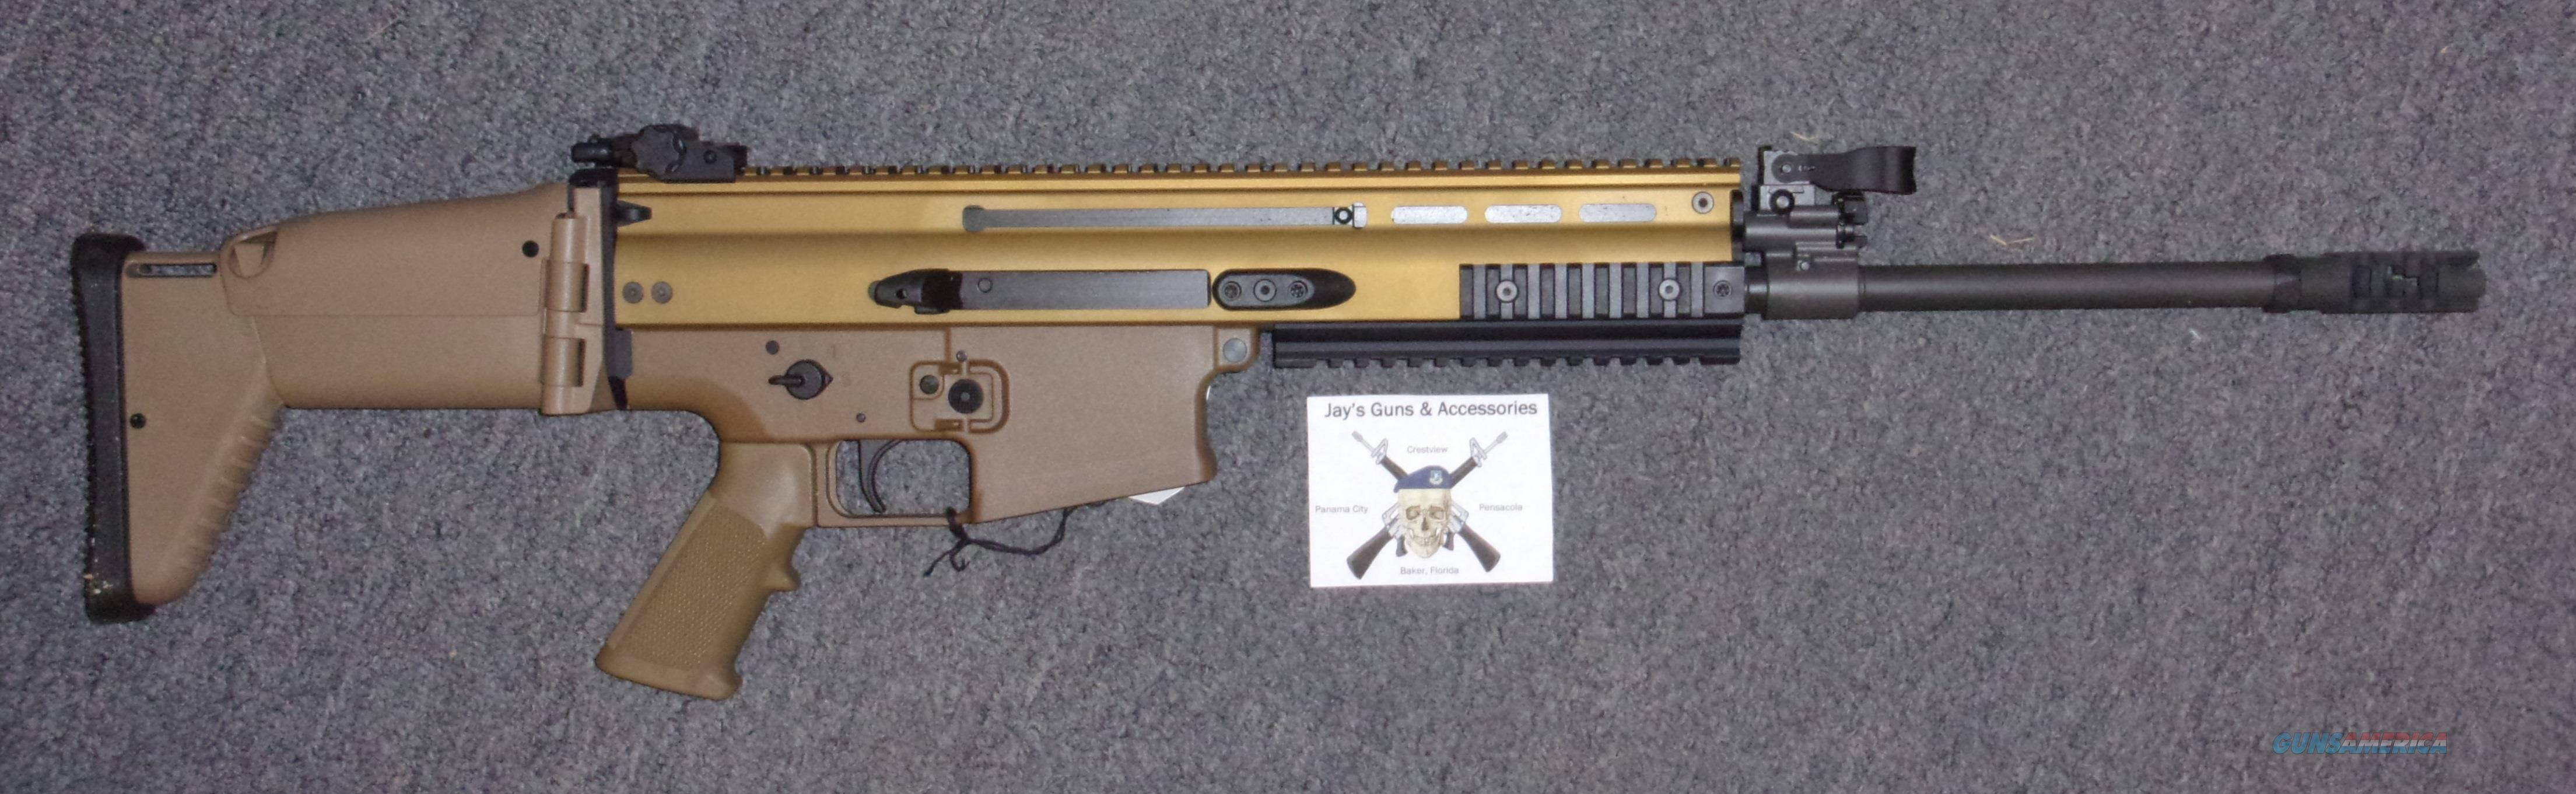 FNH SCAR 17S w/FDE Finish in .308 win Guns > Pistols > FNH - Fabrique Nationale (FN) Rifles > Semi-auto > SCAR